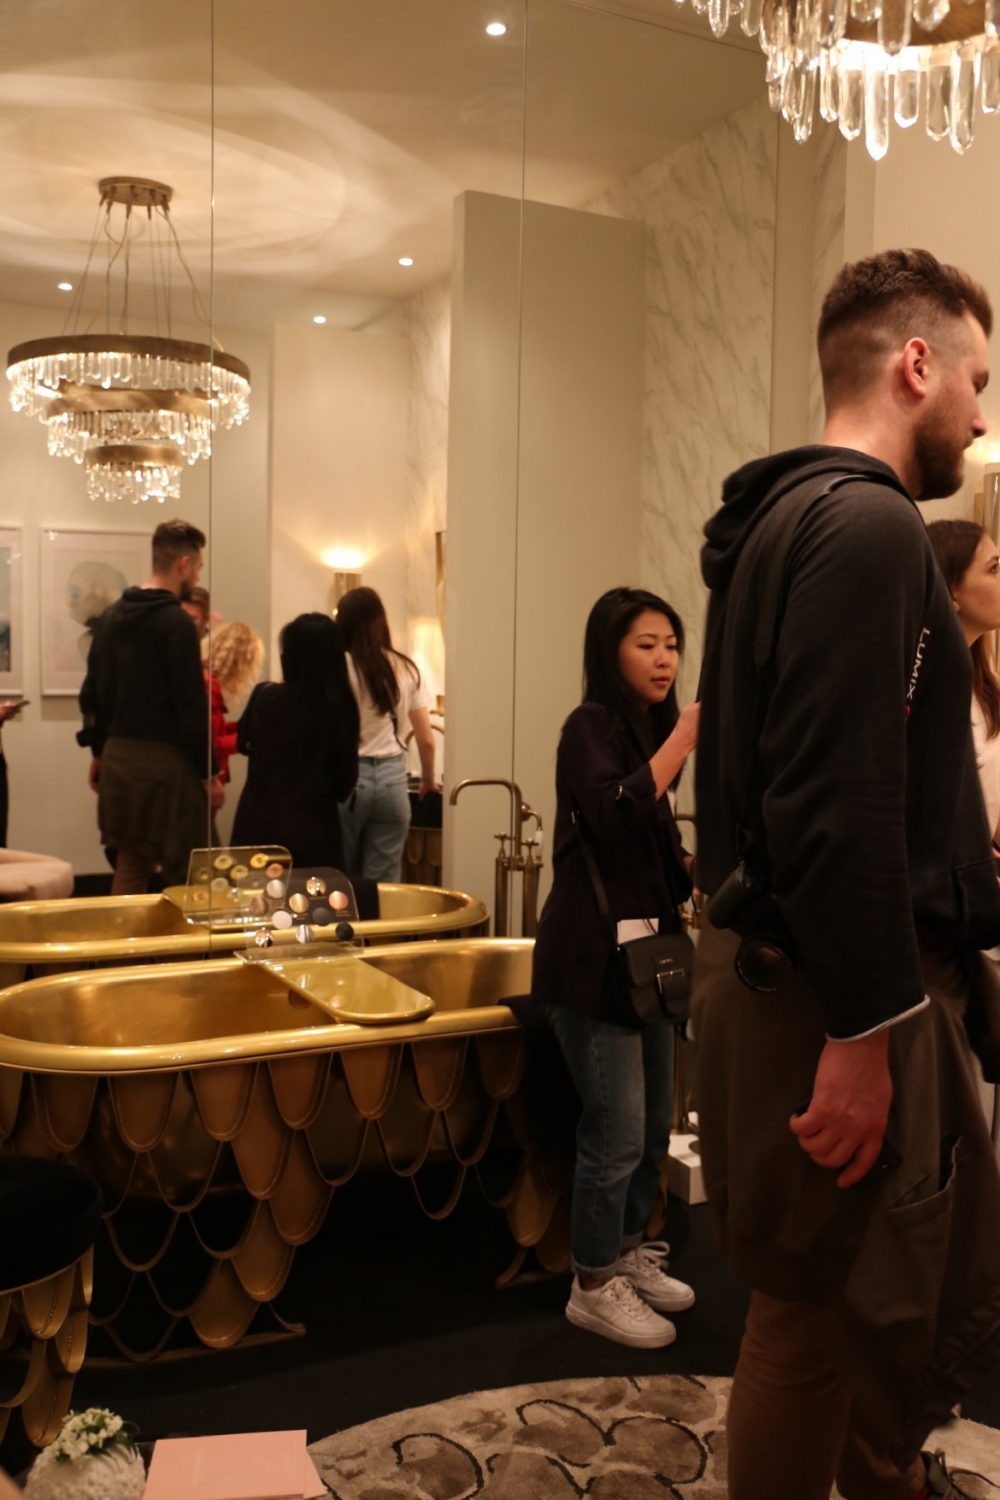 Salone Del Mobile 2019: The Top Choices Of Day 1 salone del mobile 2019 Salone Del Mobile 2019: The Top Choices Of Day 1 IMG 0349 e1554815178327